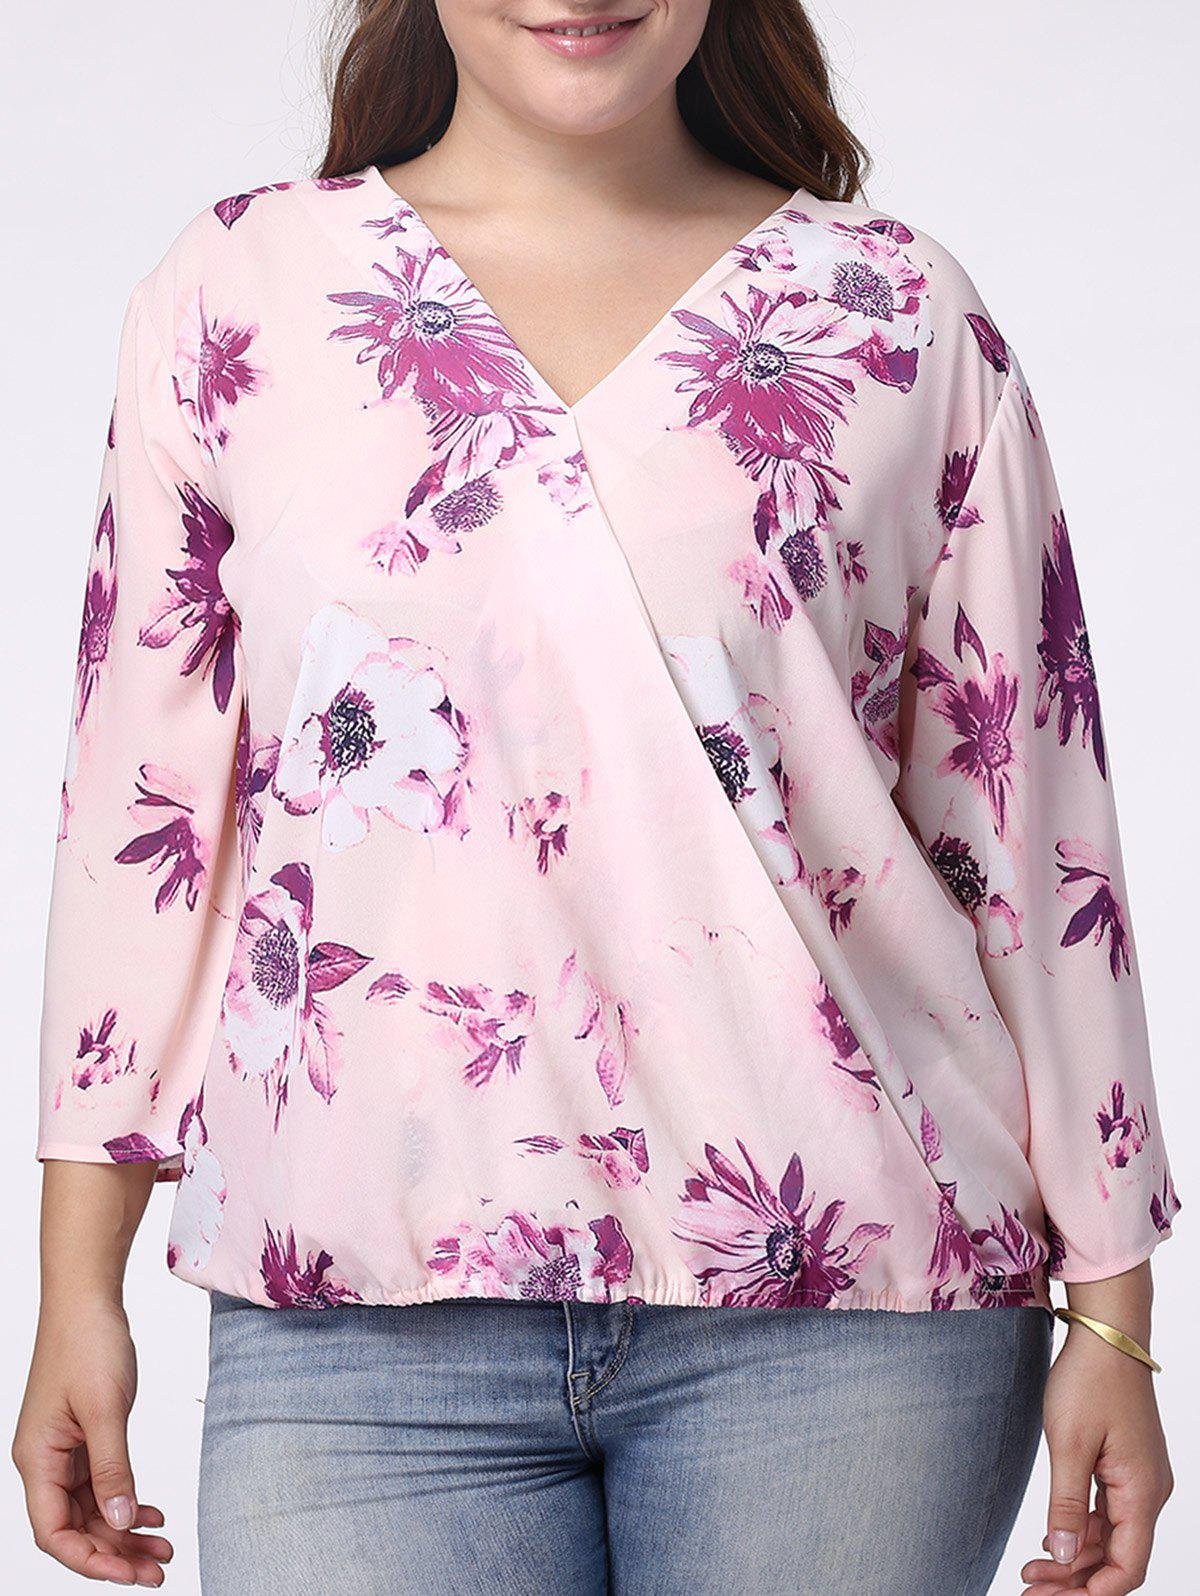 Sweet V-Neck 3/4 Sleeve Floral Print Wrapped Blouse For Women